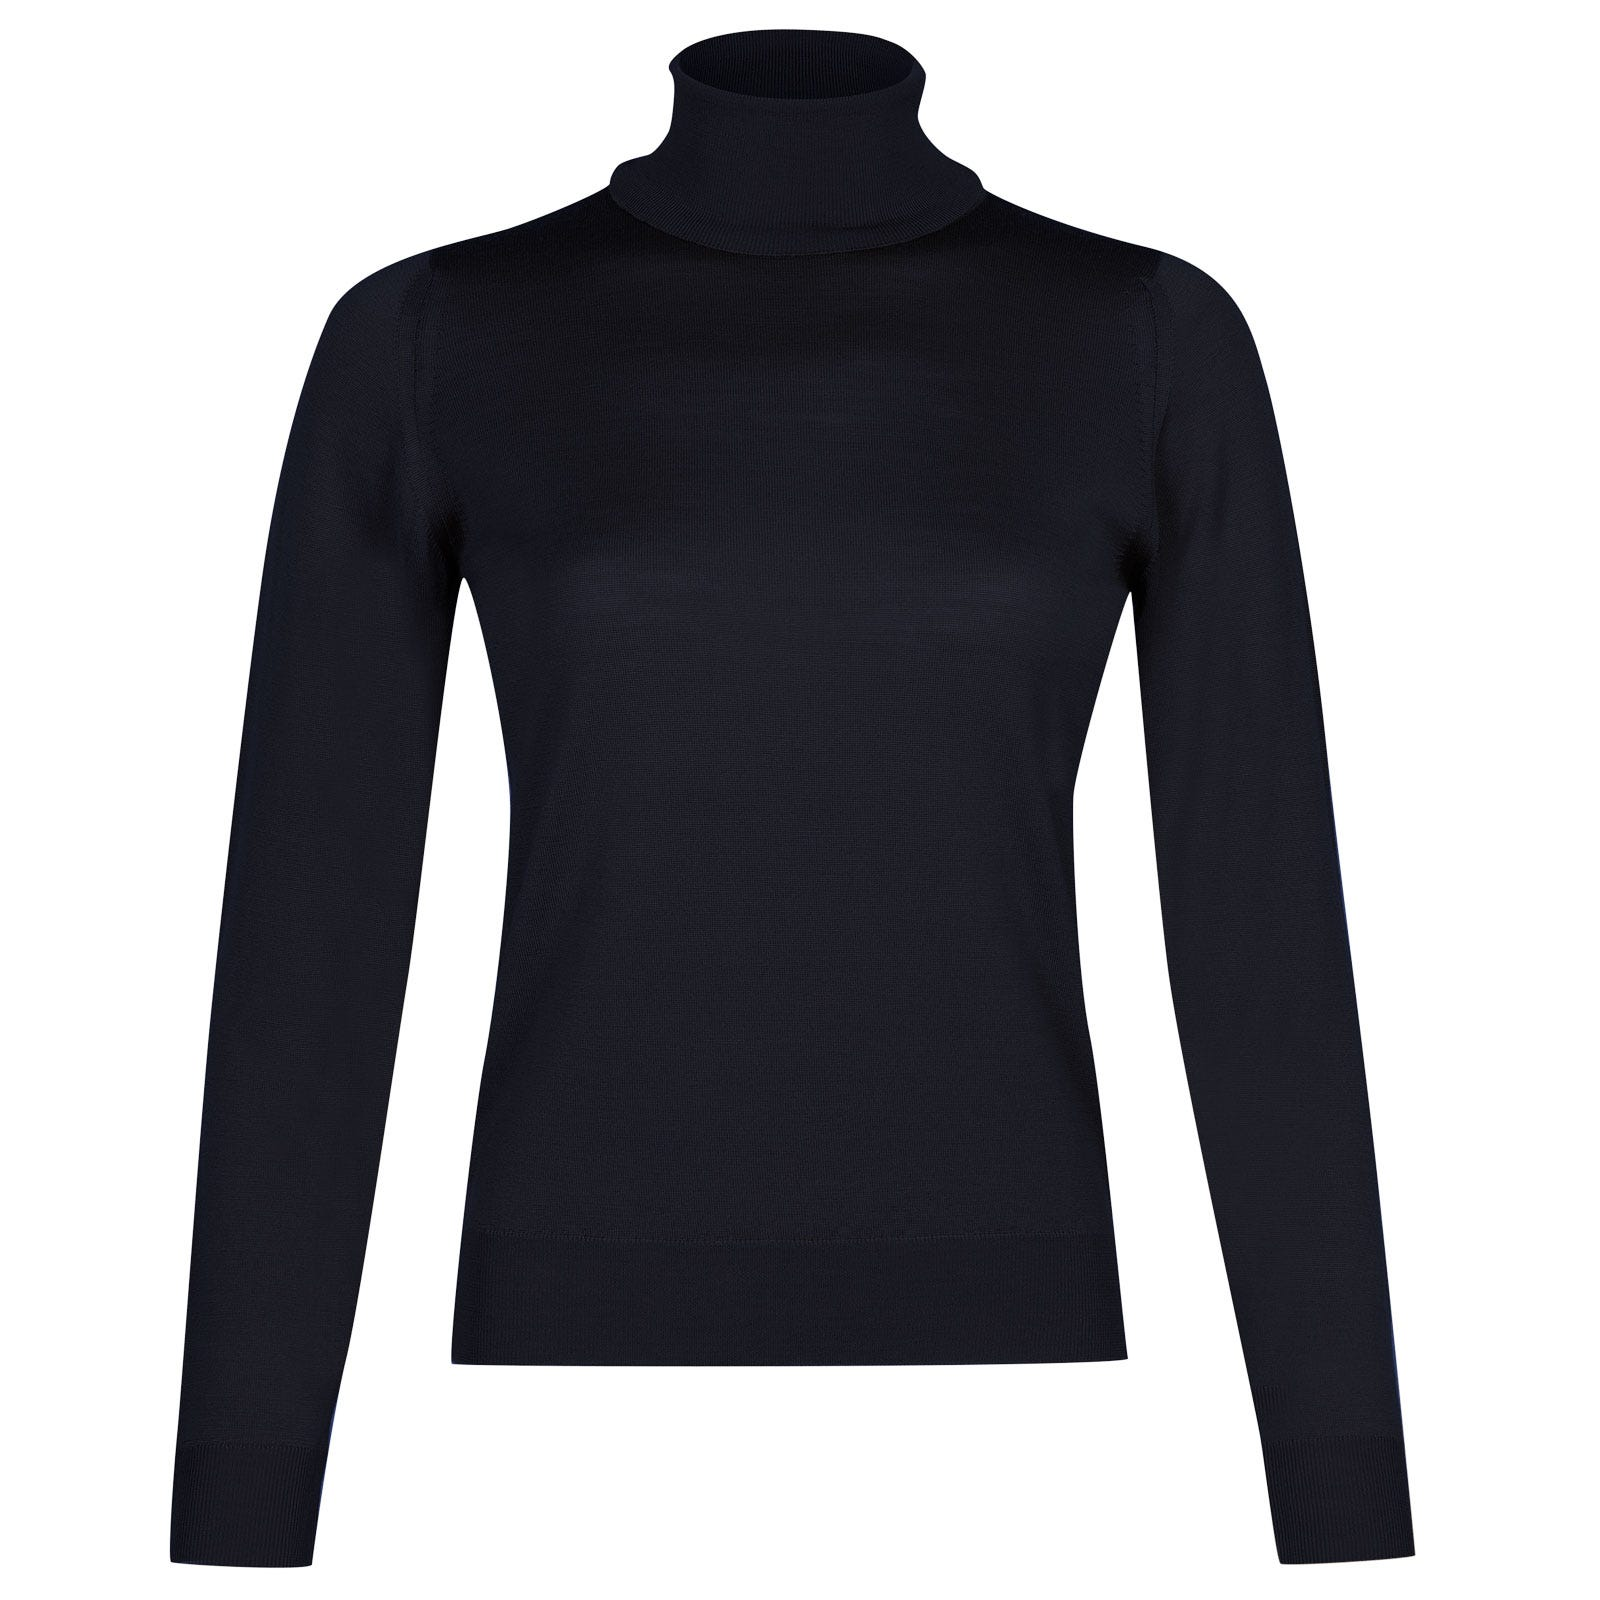 John Smedley siena Merino Wool Sweater in Midnight-M